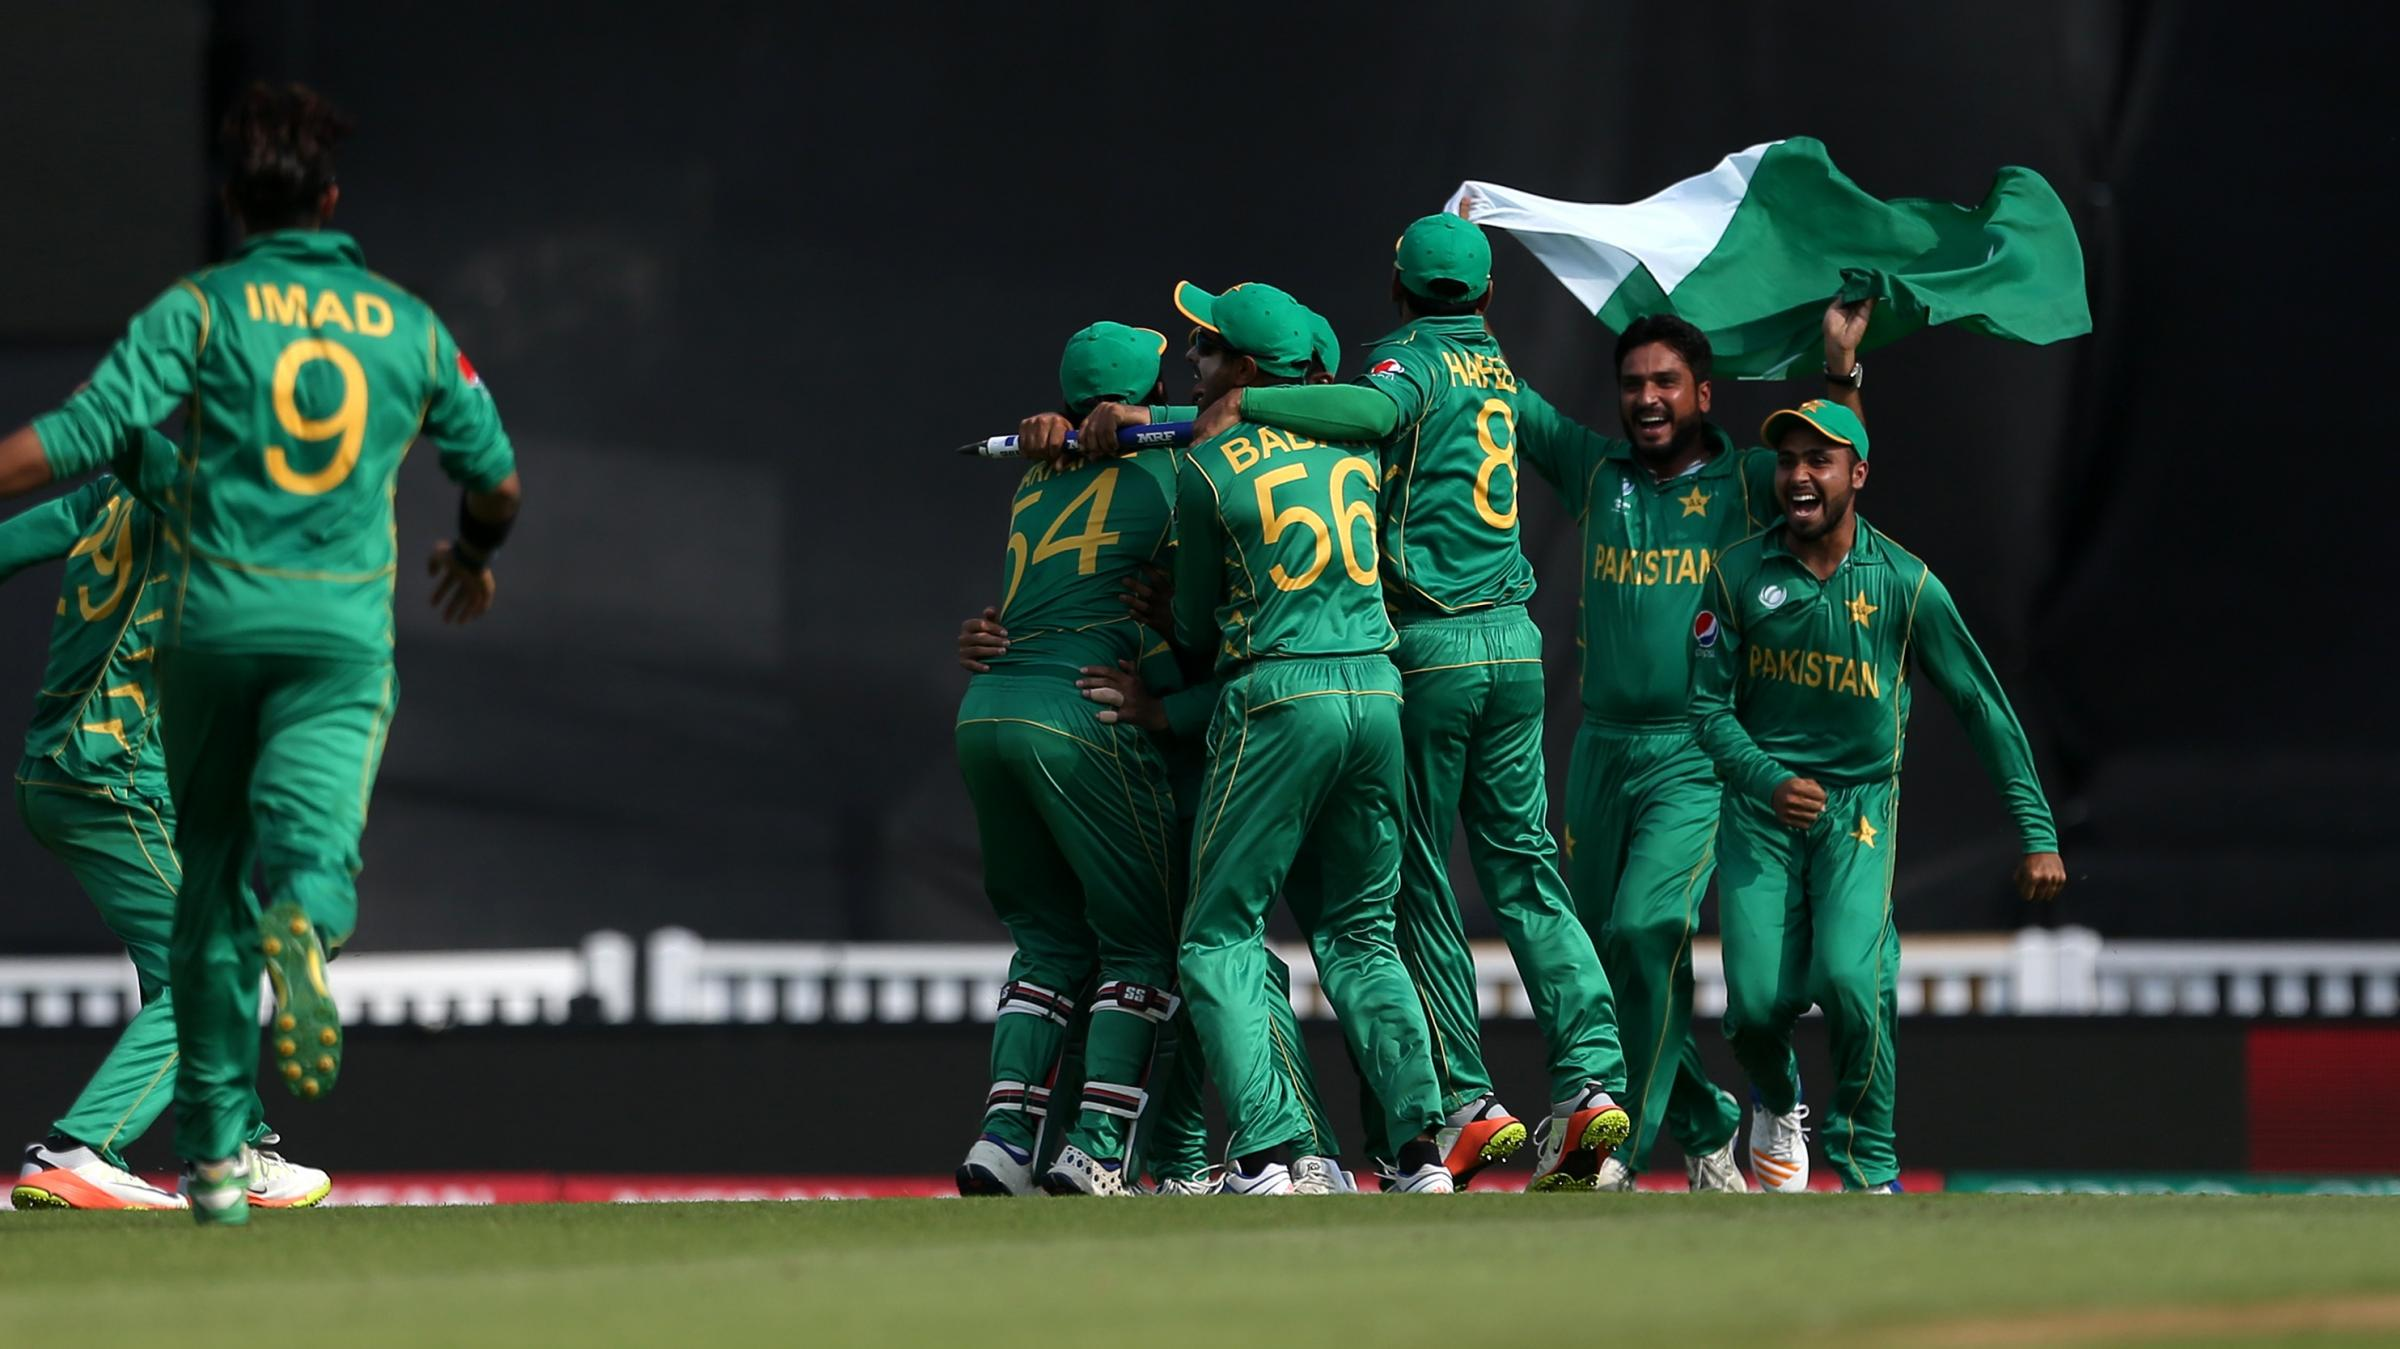 Pakistan destroy arch-rivals India to claim Champions Trophy